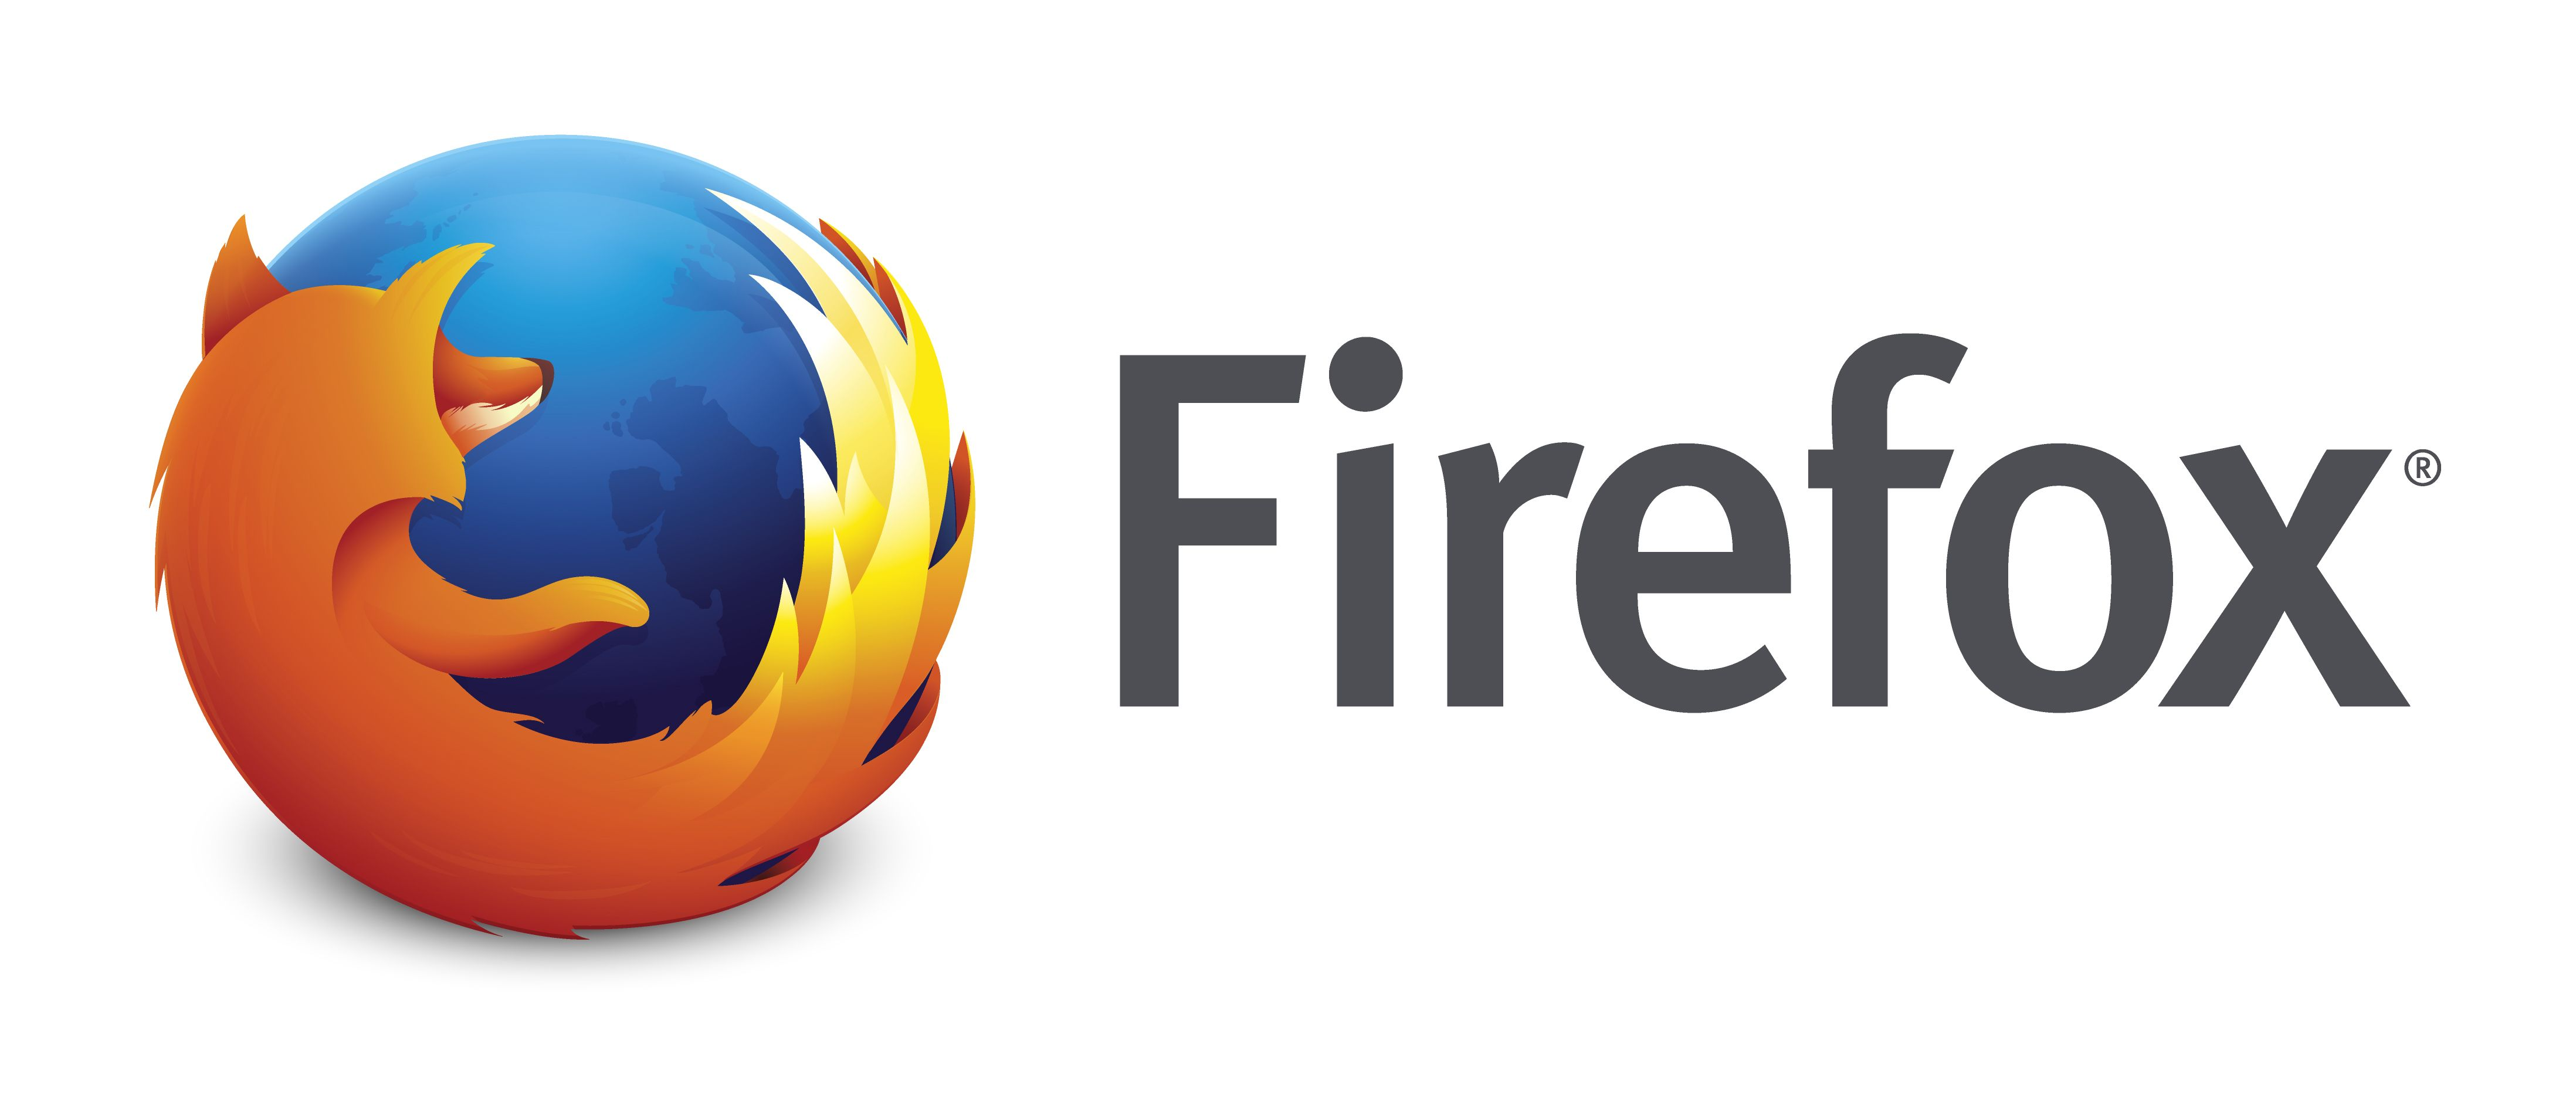 According to Mozilla, the new browser will feature debugging